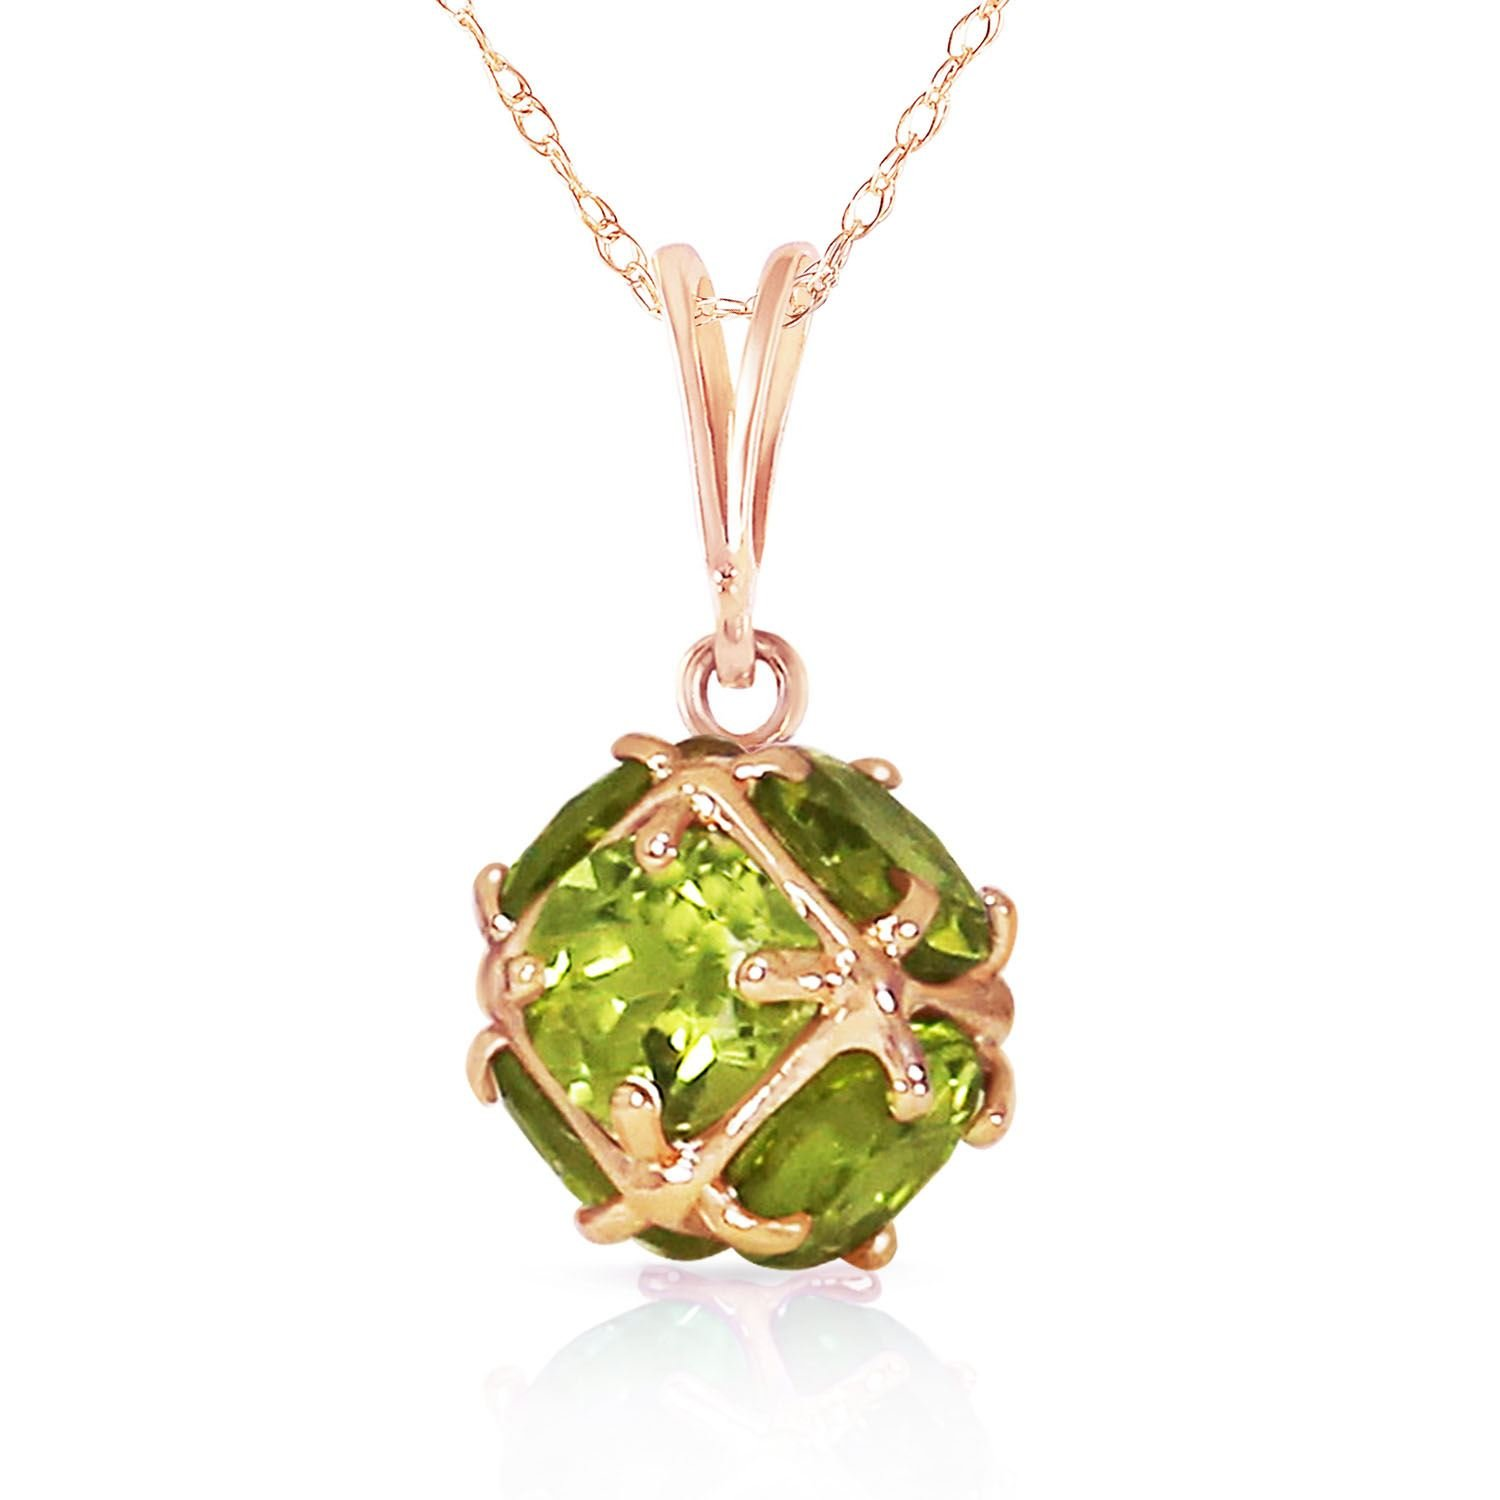 ALARRI 14K Solid Rose Gold Necklace with Natural Peridots with 20 Inch Chain Length